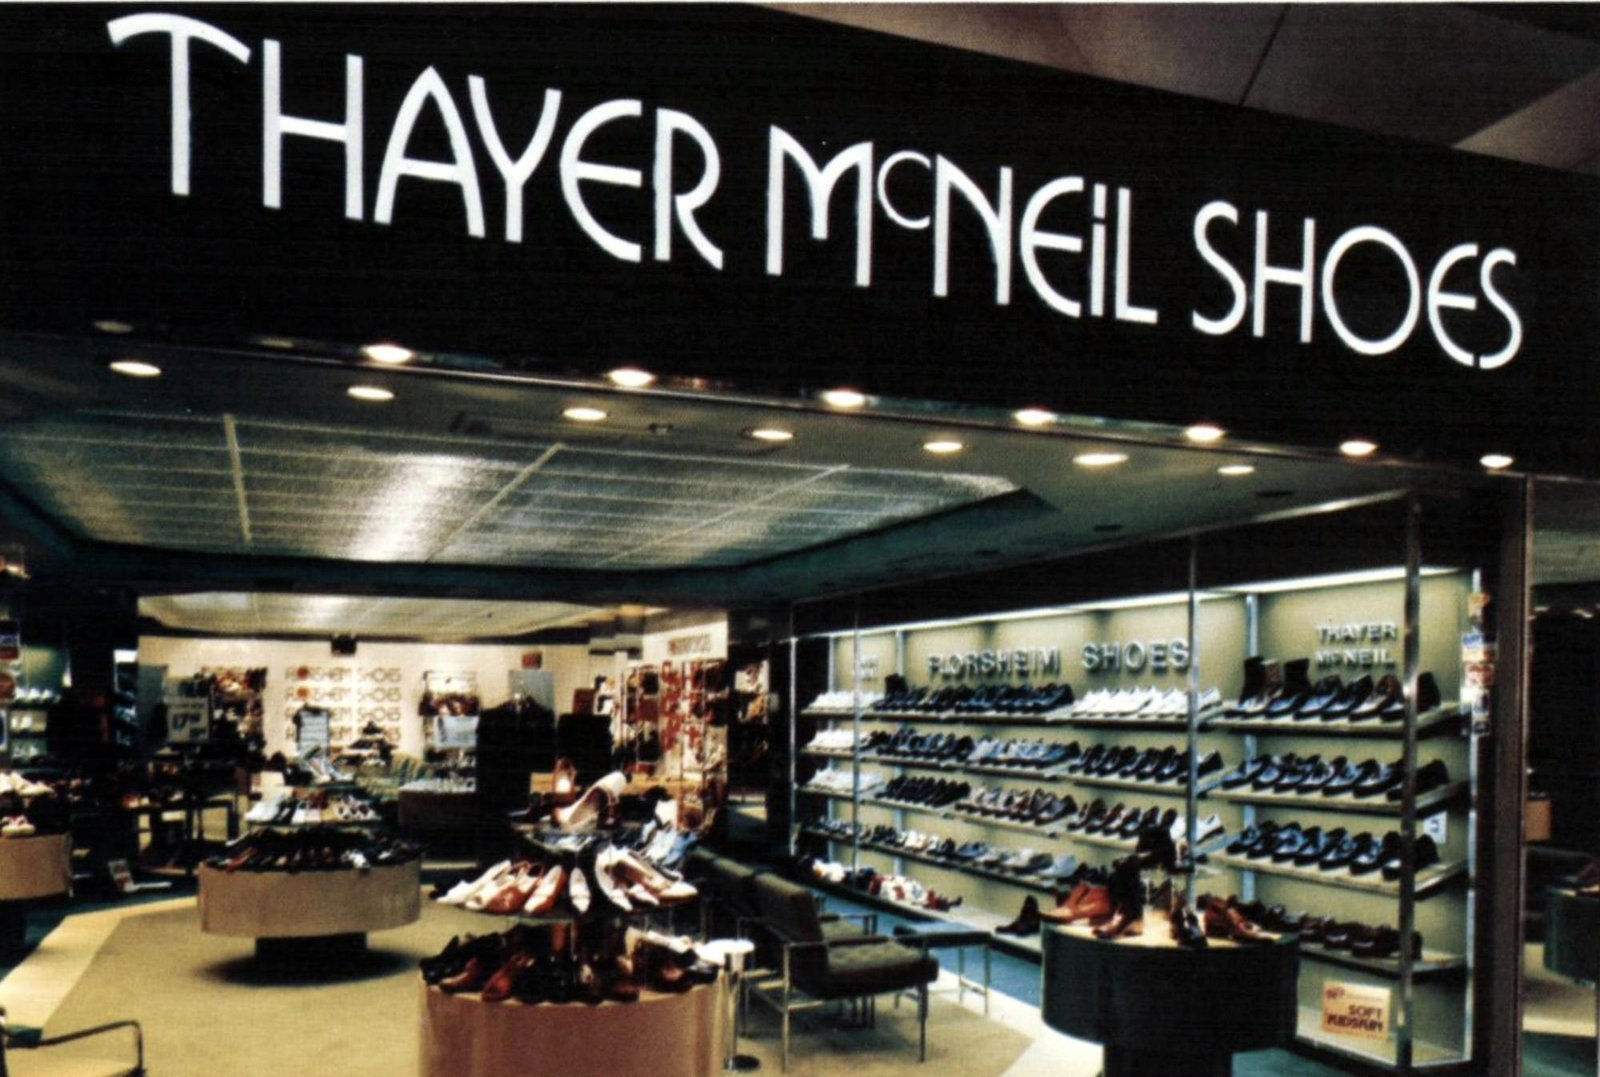 Thayer McNeil Shoes (1973)